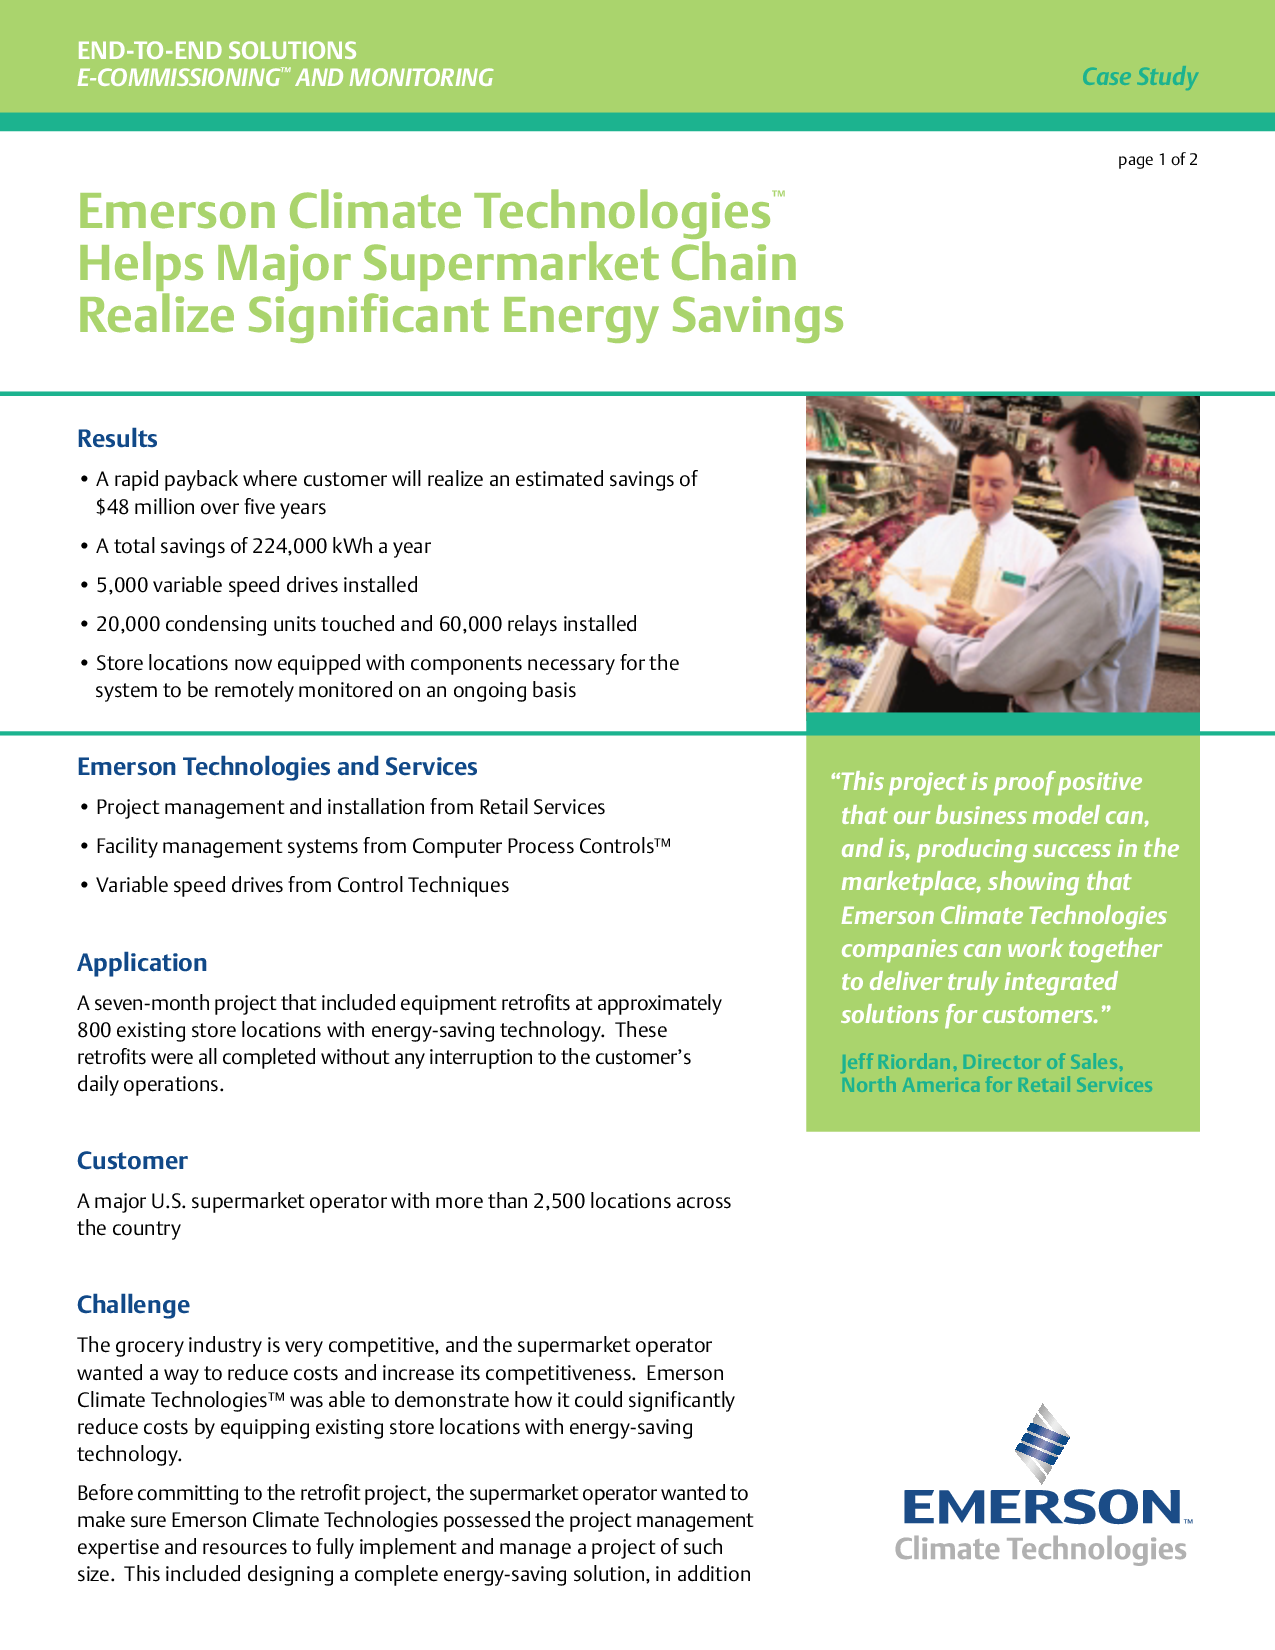 Emerson Climate Technologies Helps Major Supermarket Chain Realize Significant Energy Savings